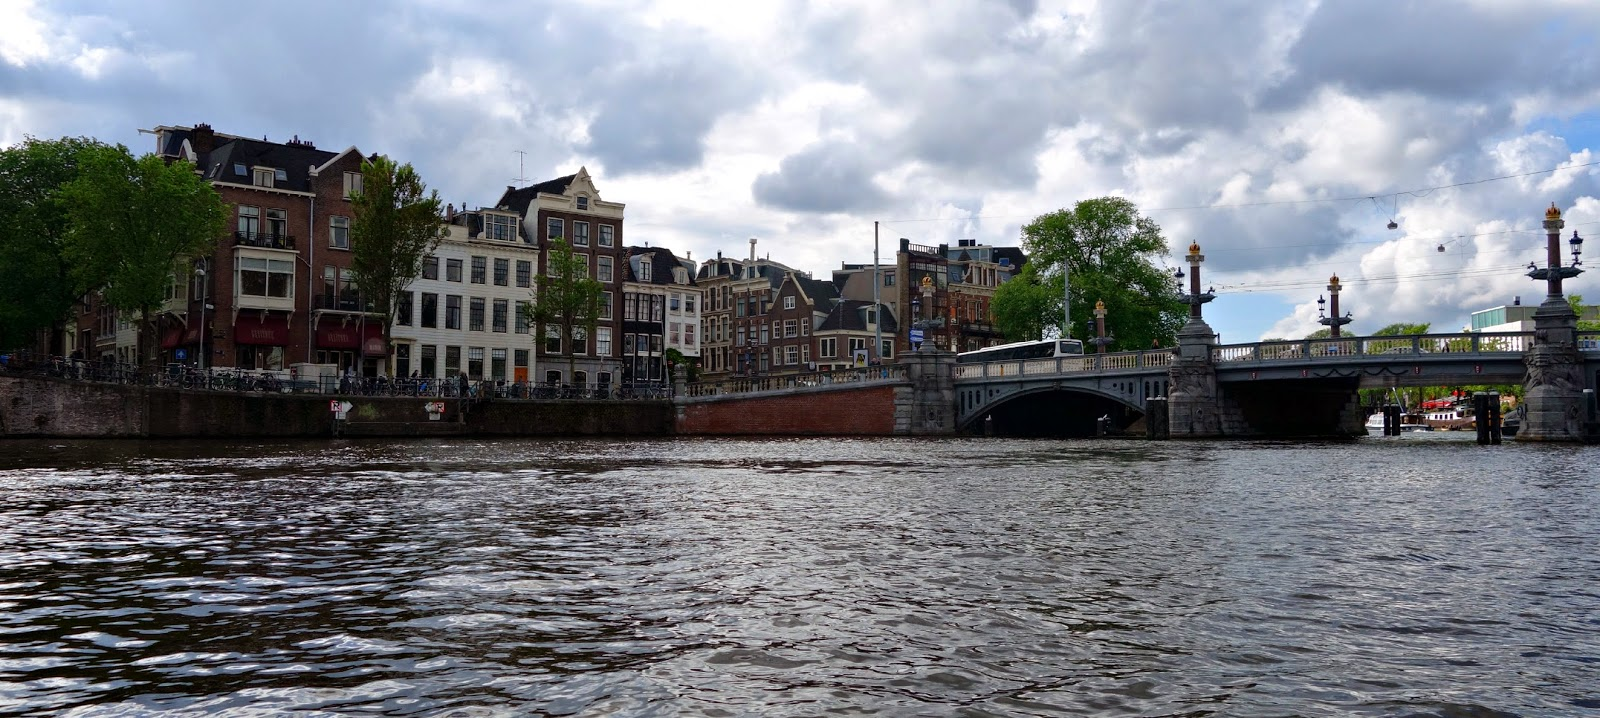 Amsterdam | View from the Canal - The Healthy Passport